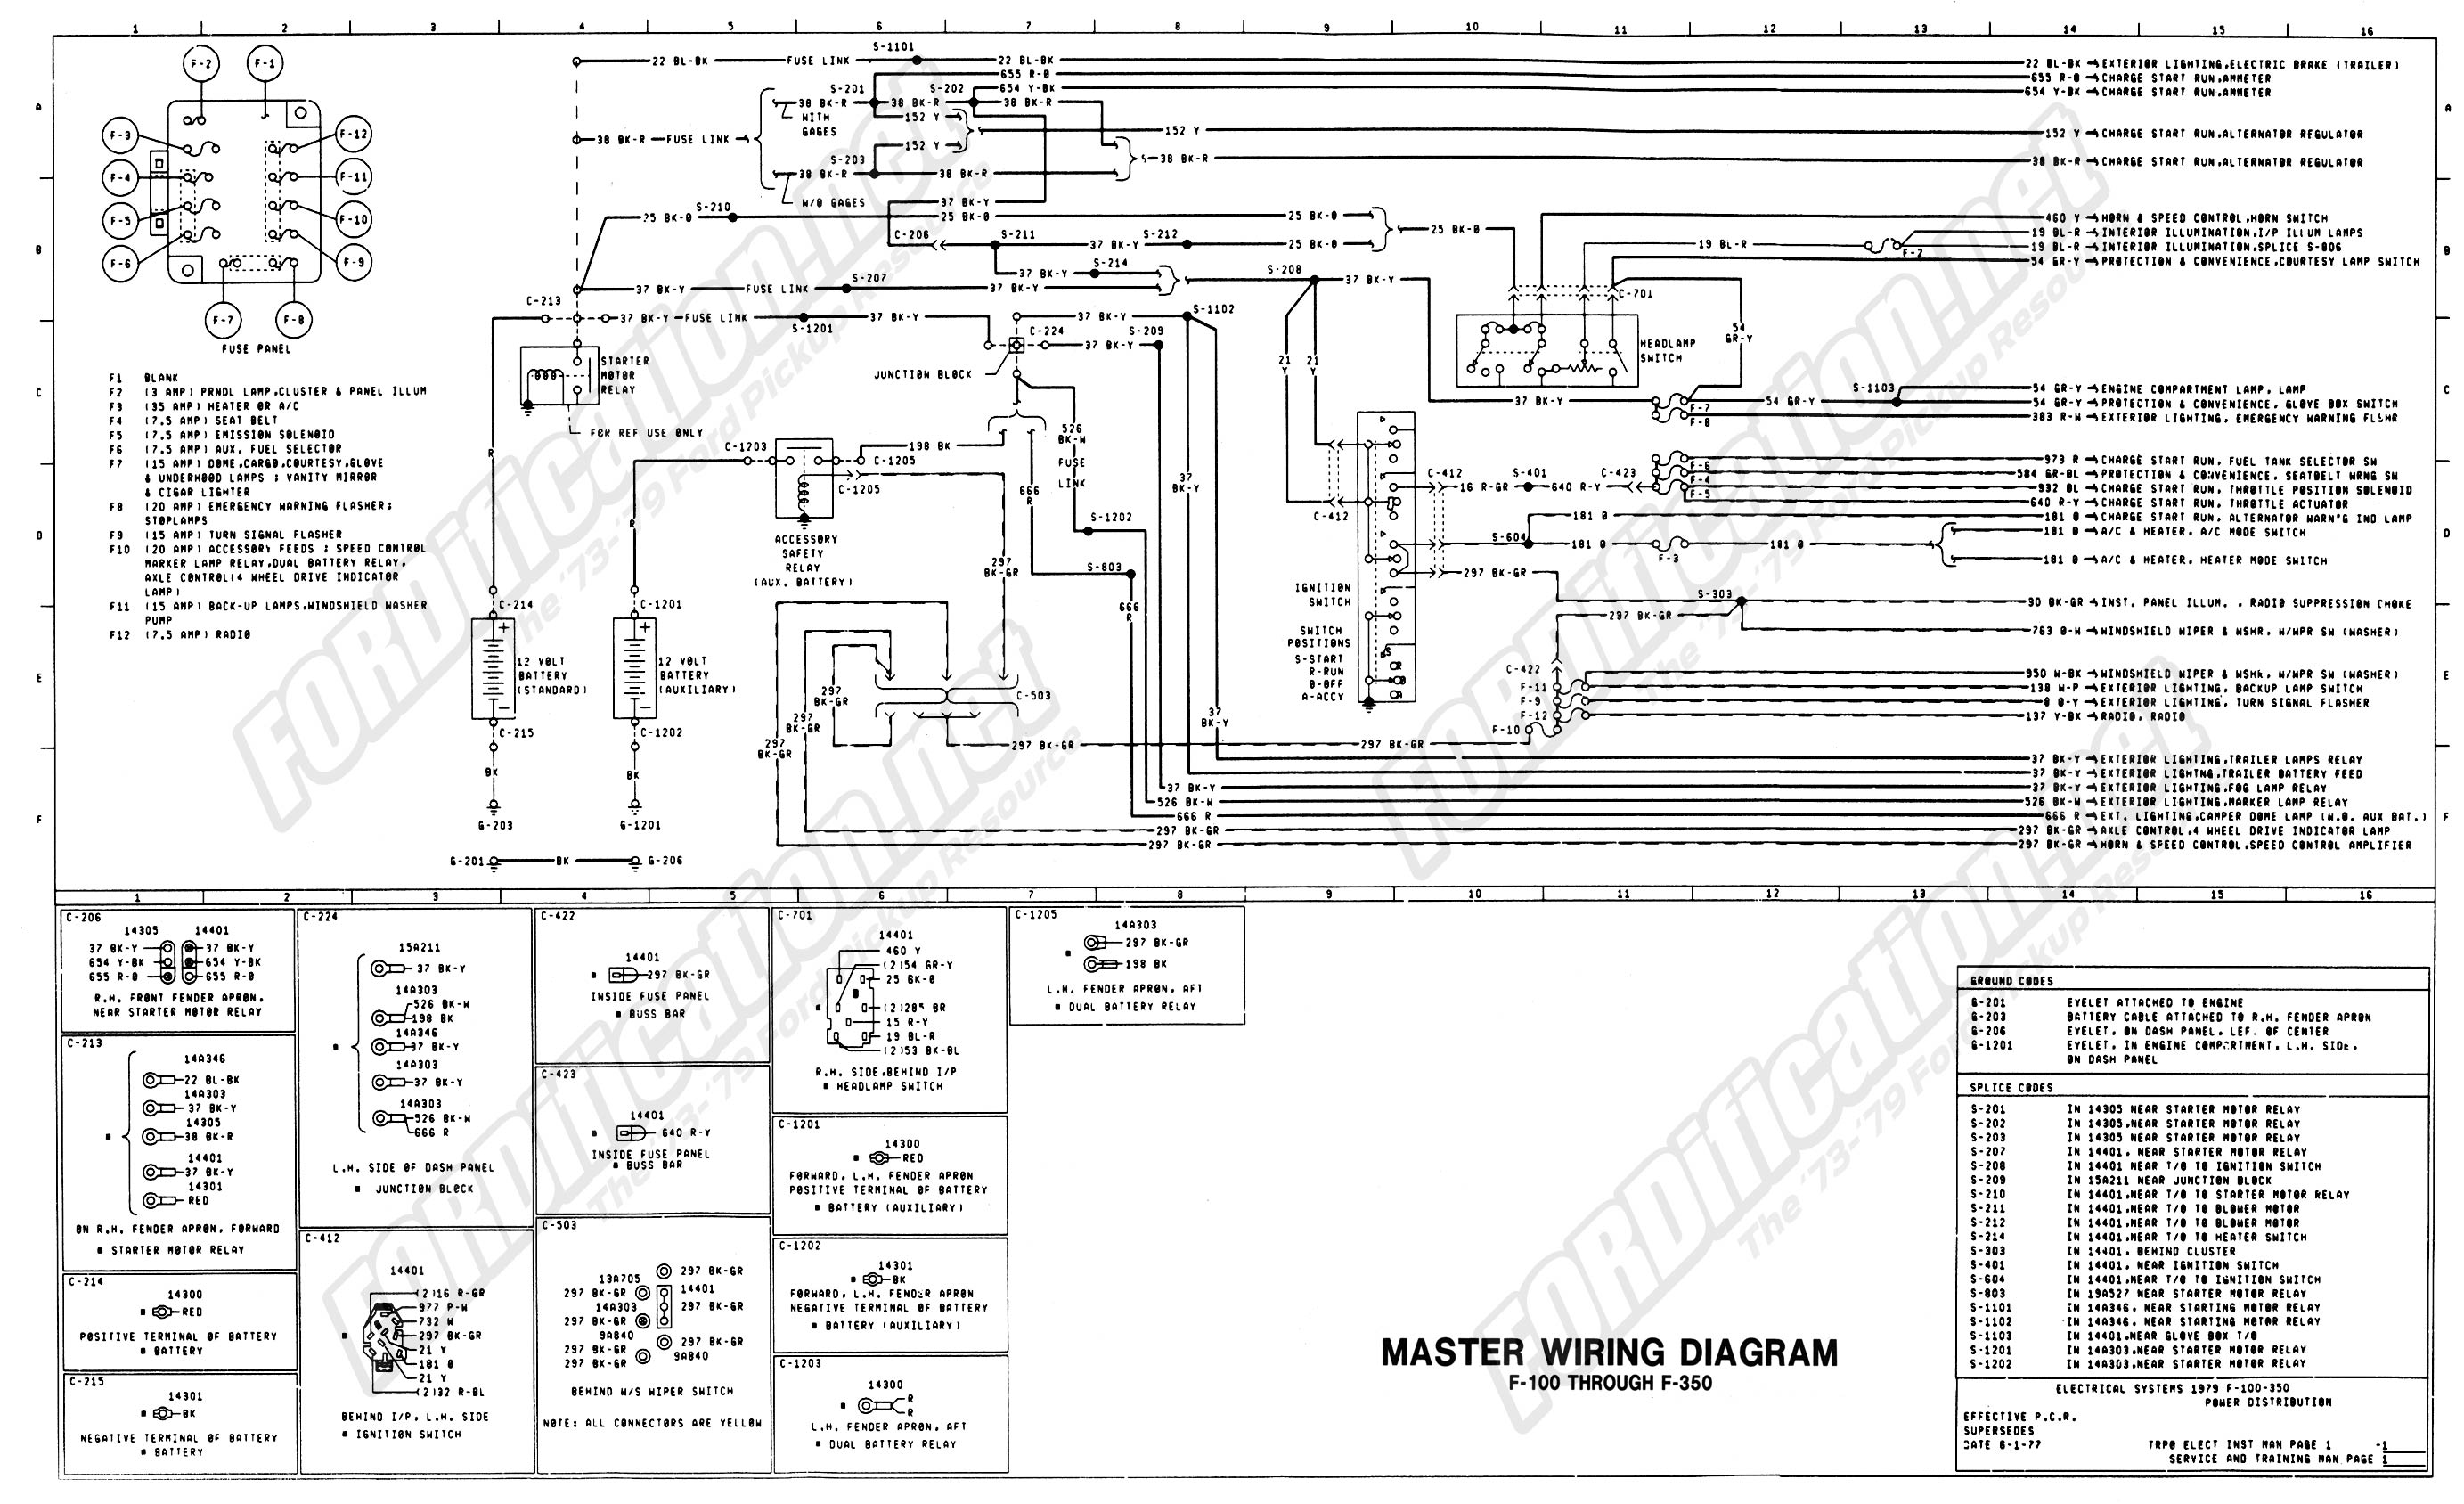 wiring_79master_1of9 1973 1979 ford truck wiring diagrams & schematics fordification net 1961 ford truck wiring diagram at gsmportal.co